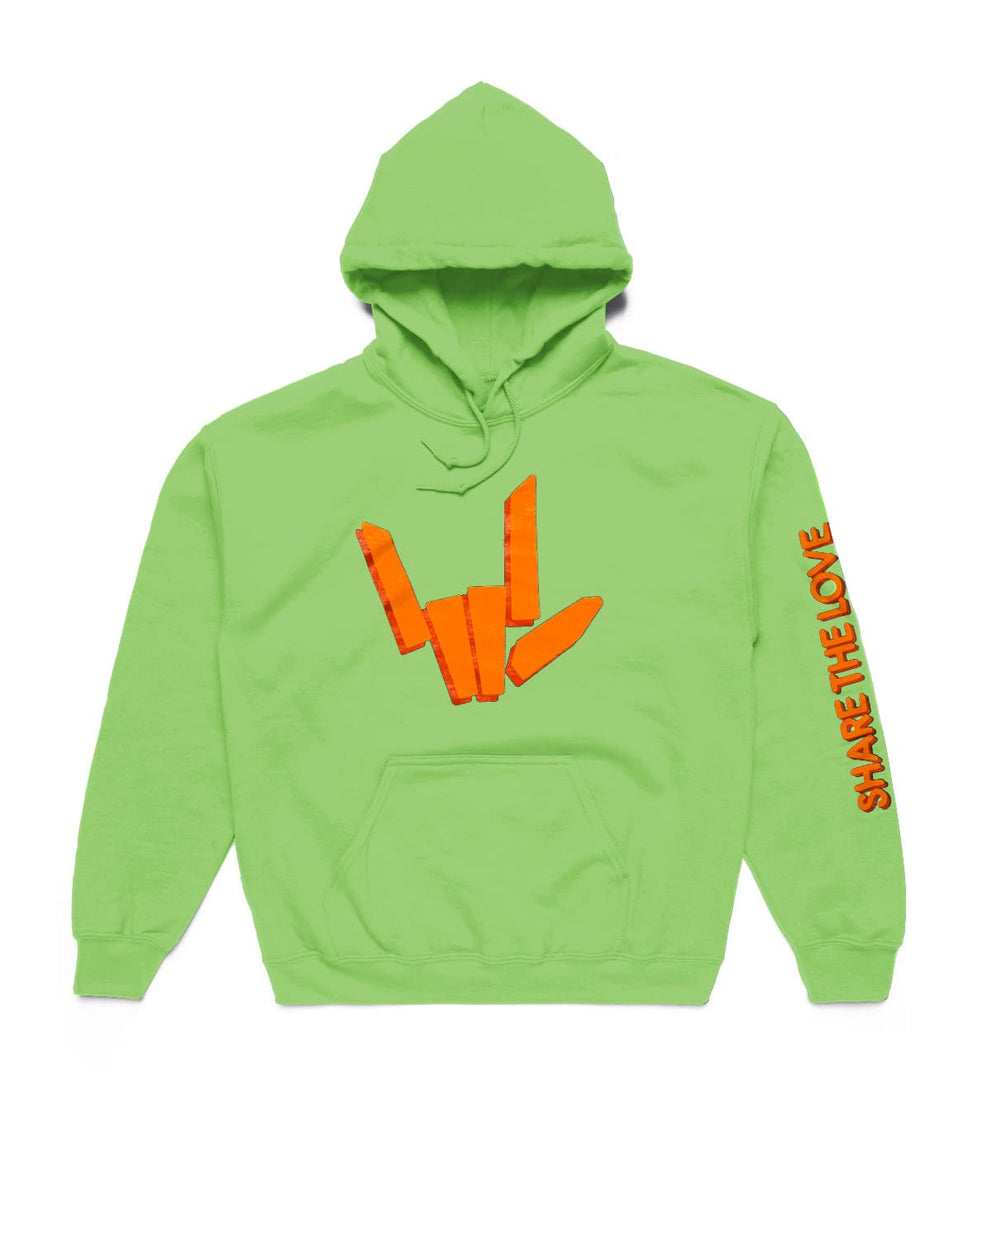 'Share The Love' Hoodie - Neon Green